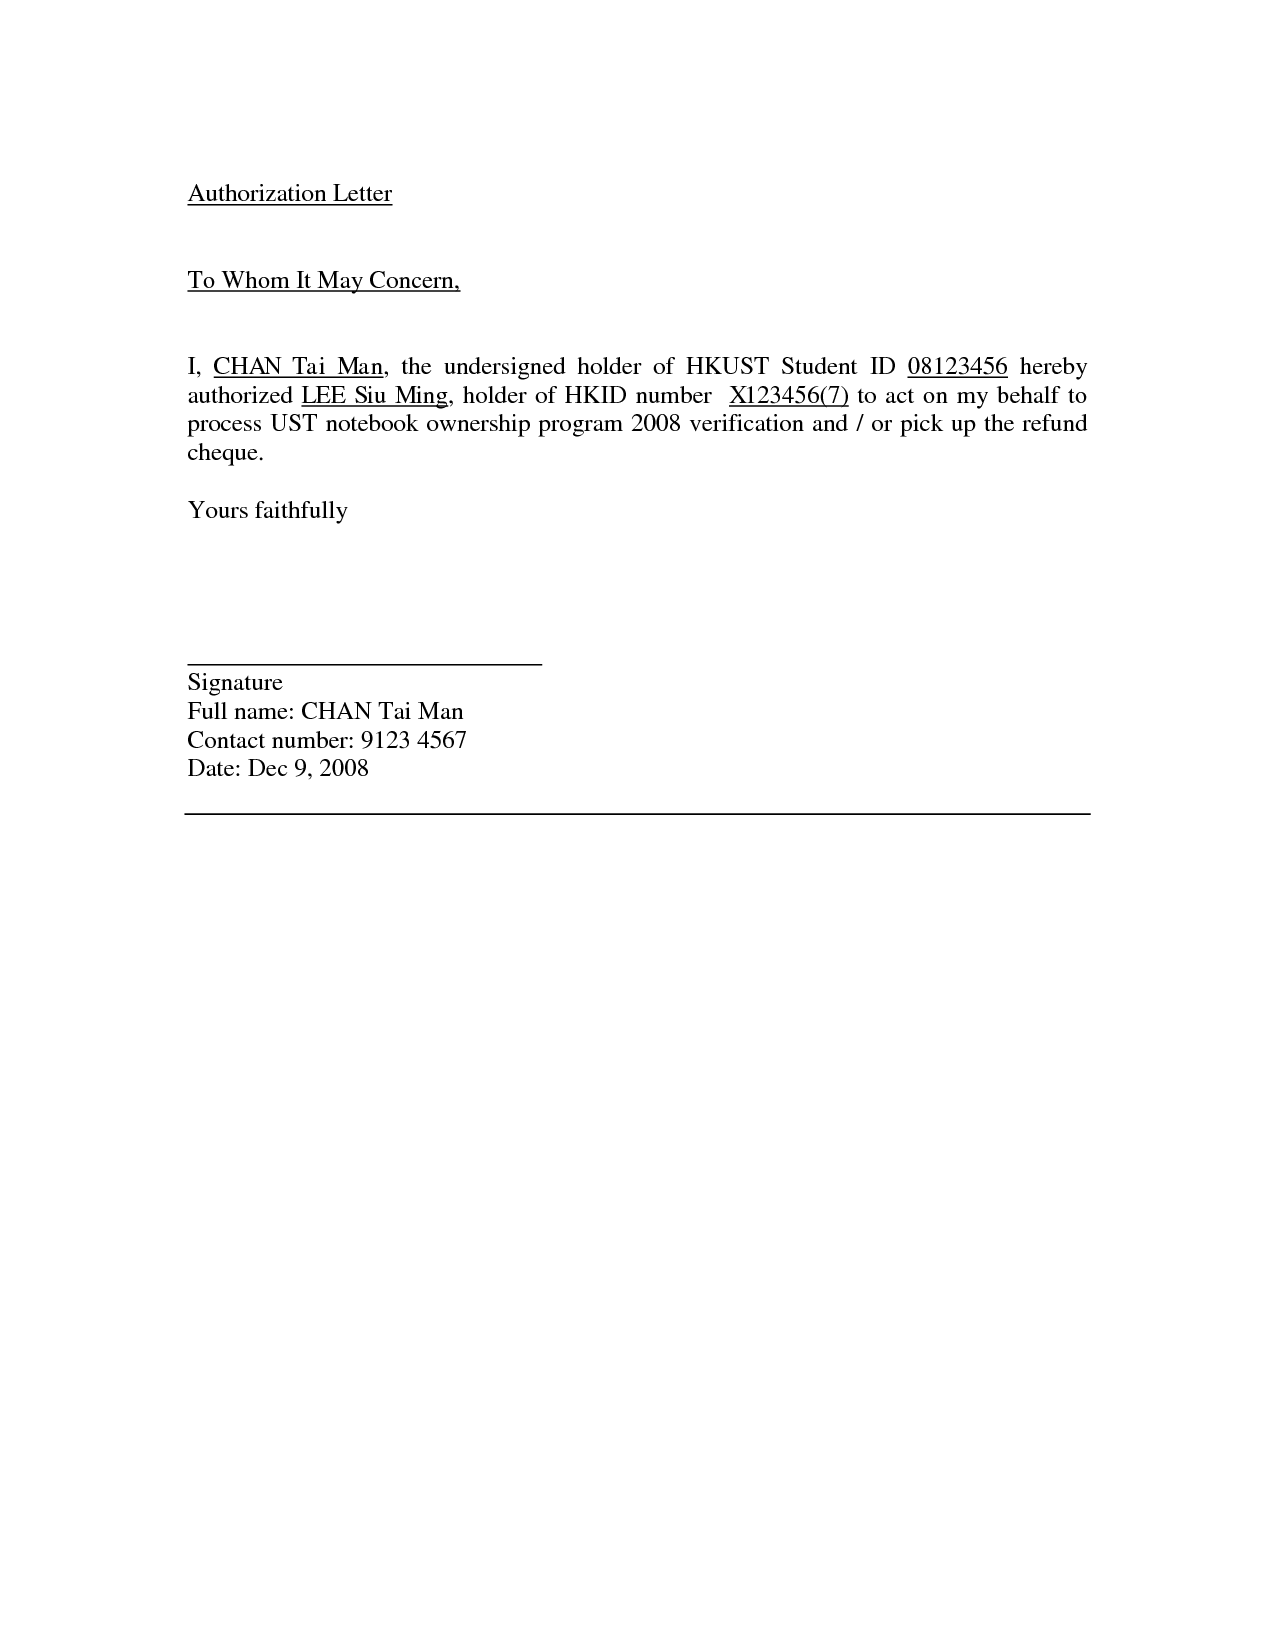 Authorization Letter Samples Act Behalf Word Excel Authority Format